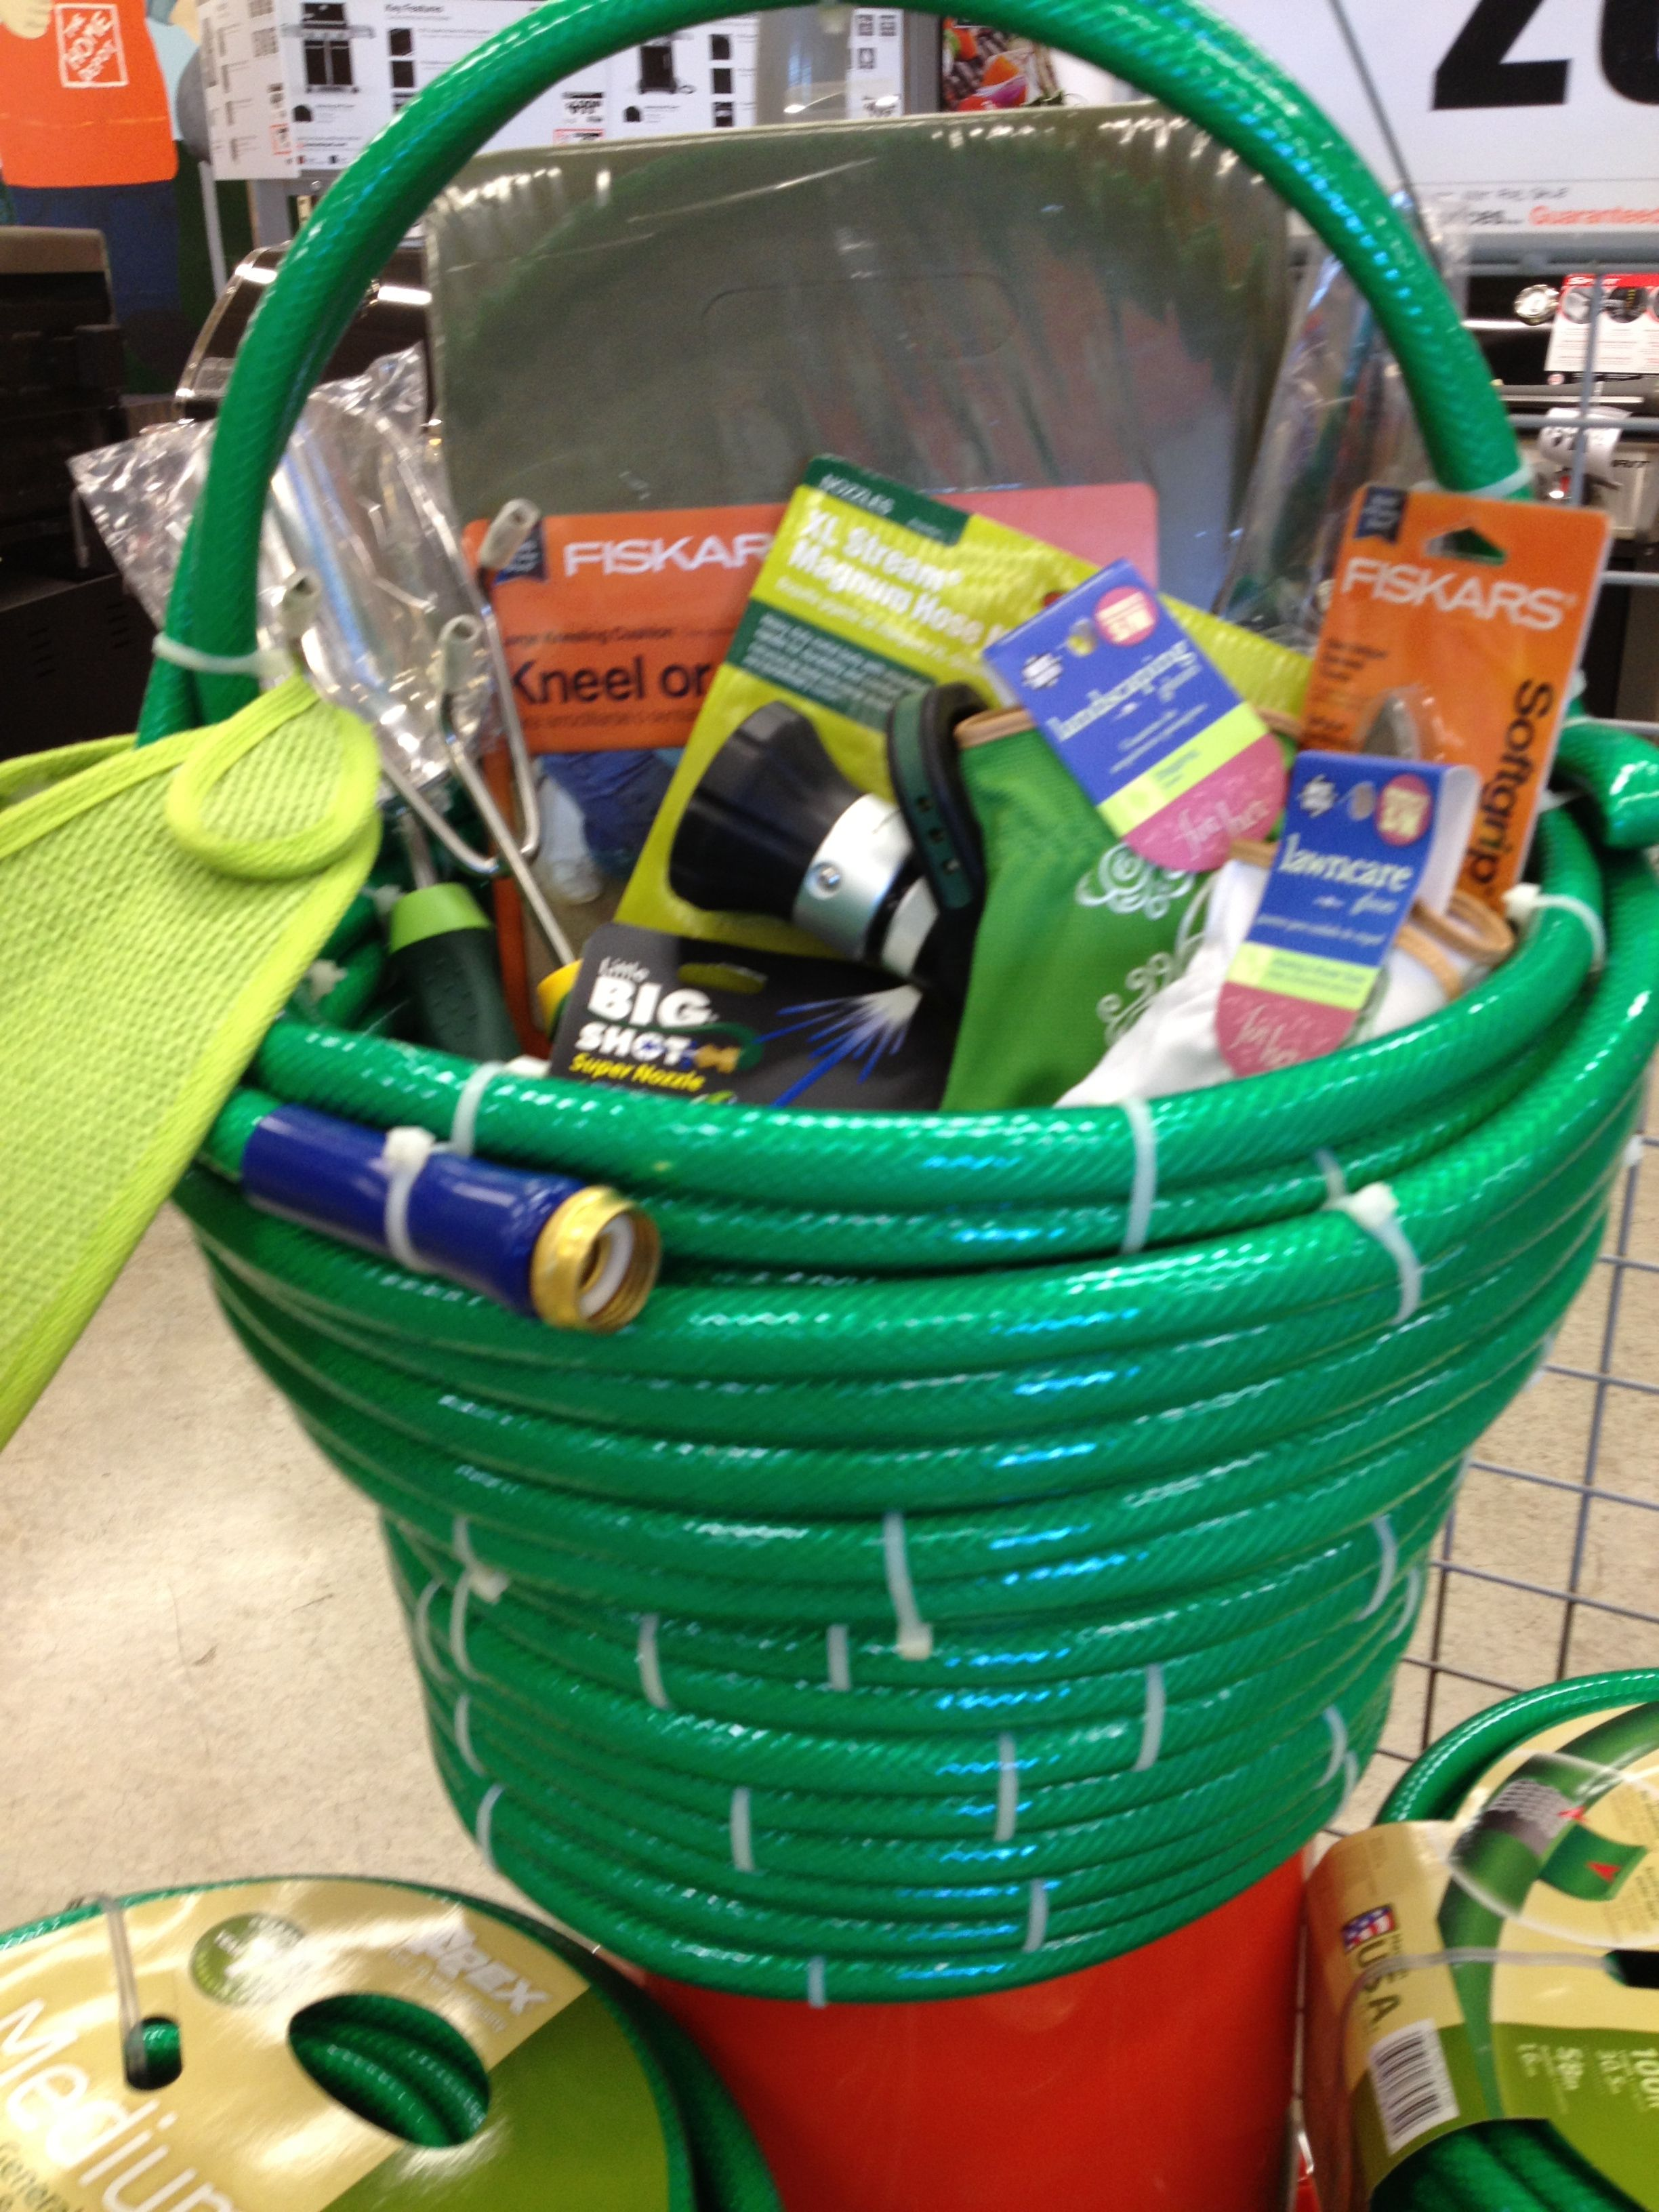 Gardener Gift Basket Hose Zip Tied Together To Make The Basket